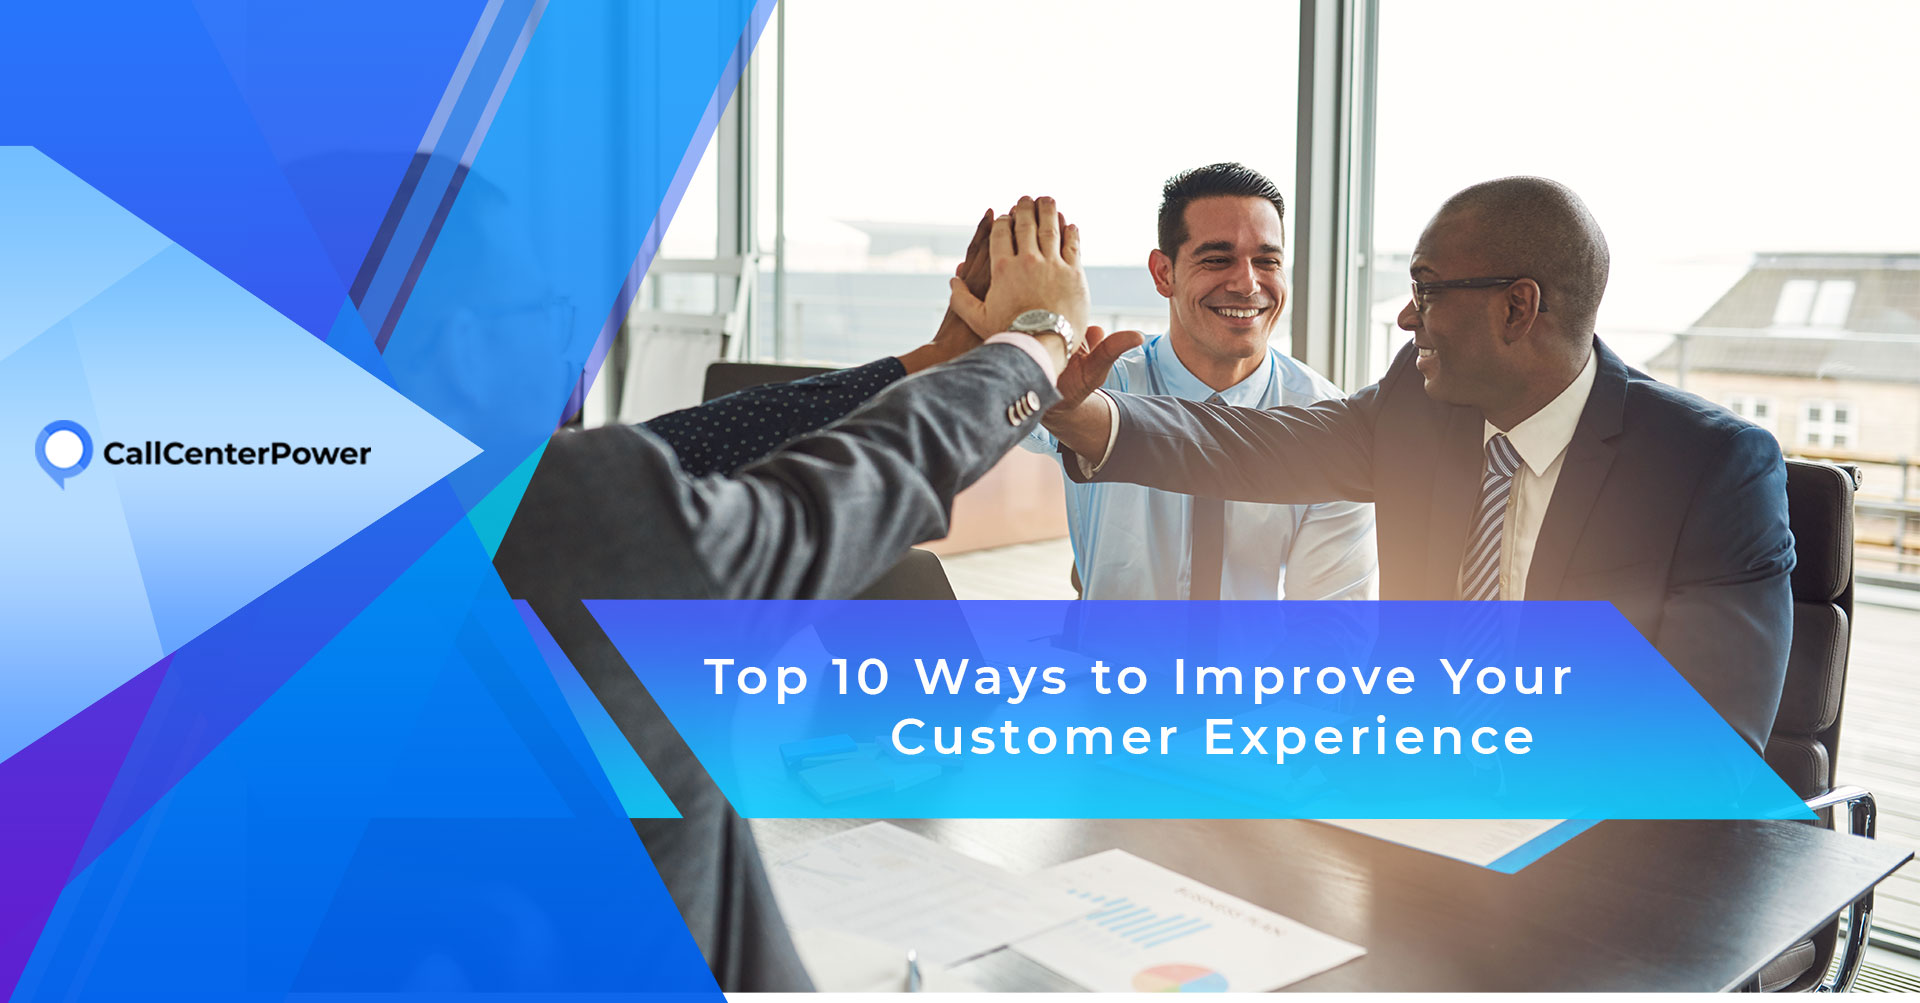 Top 10 ways to improve your customer experience